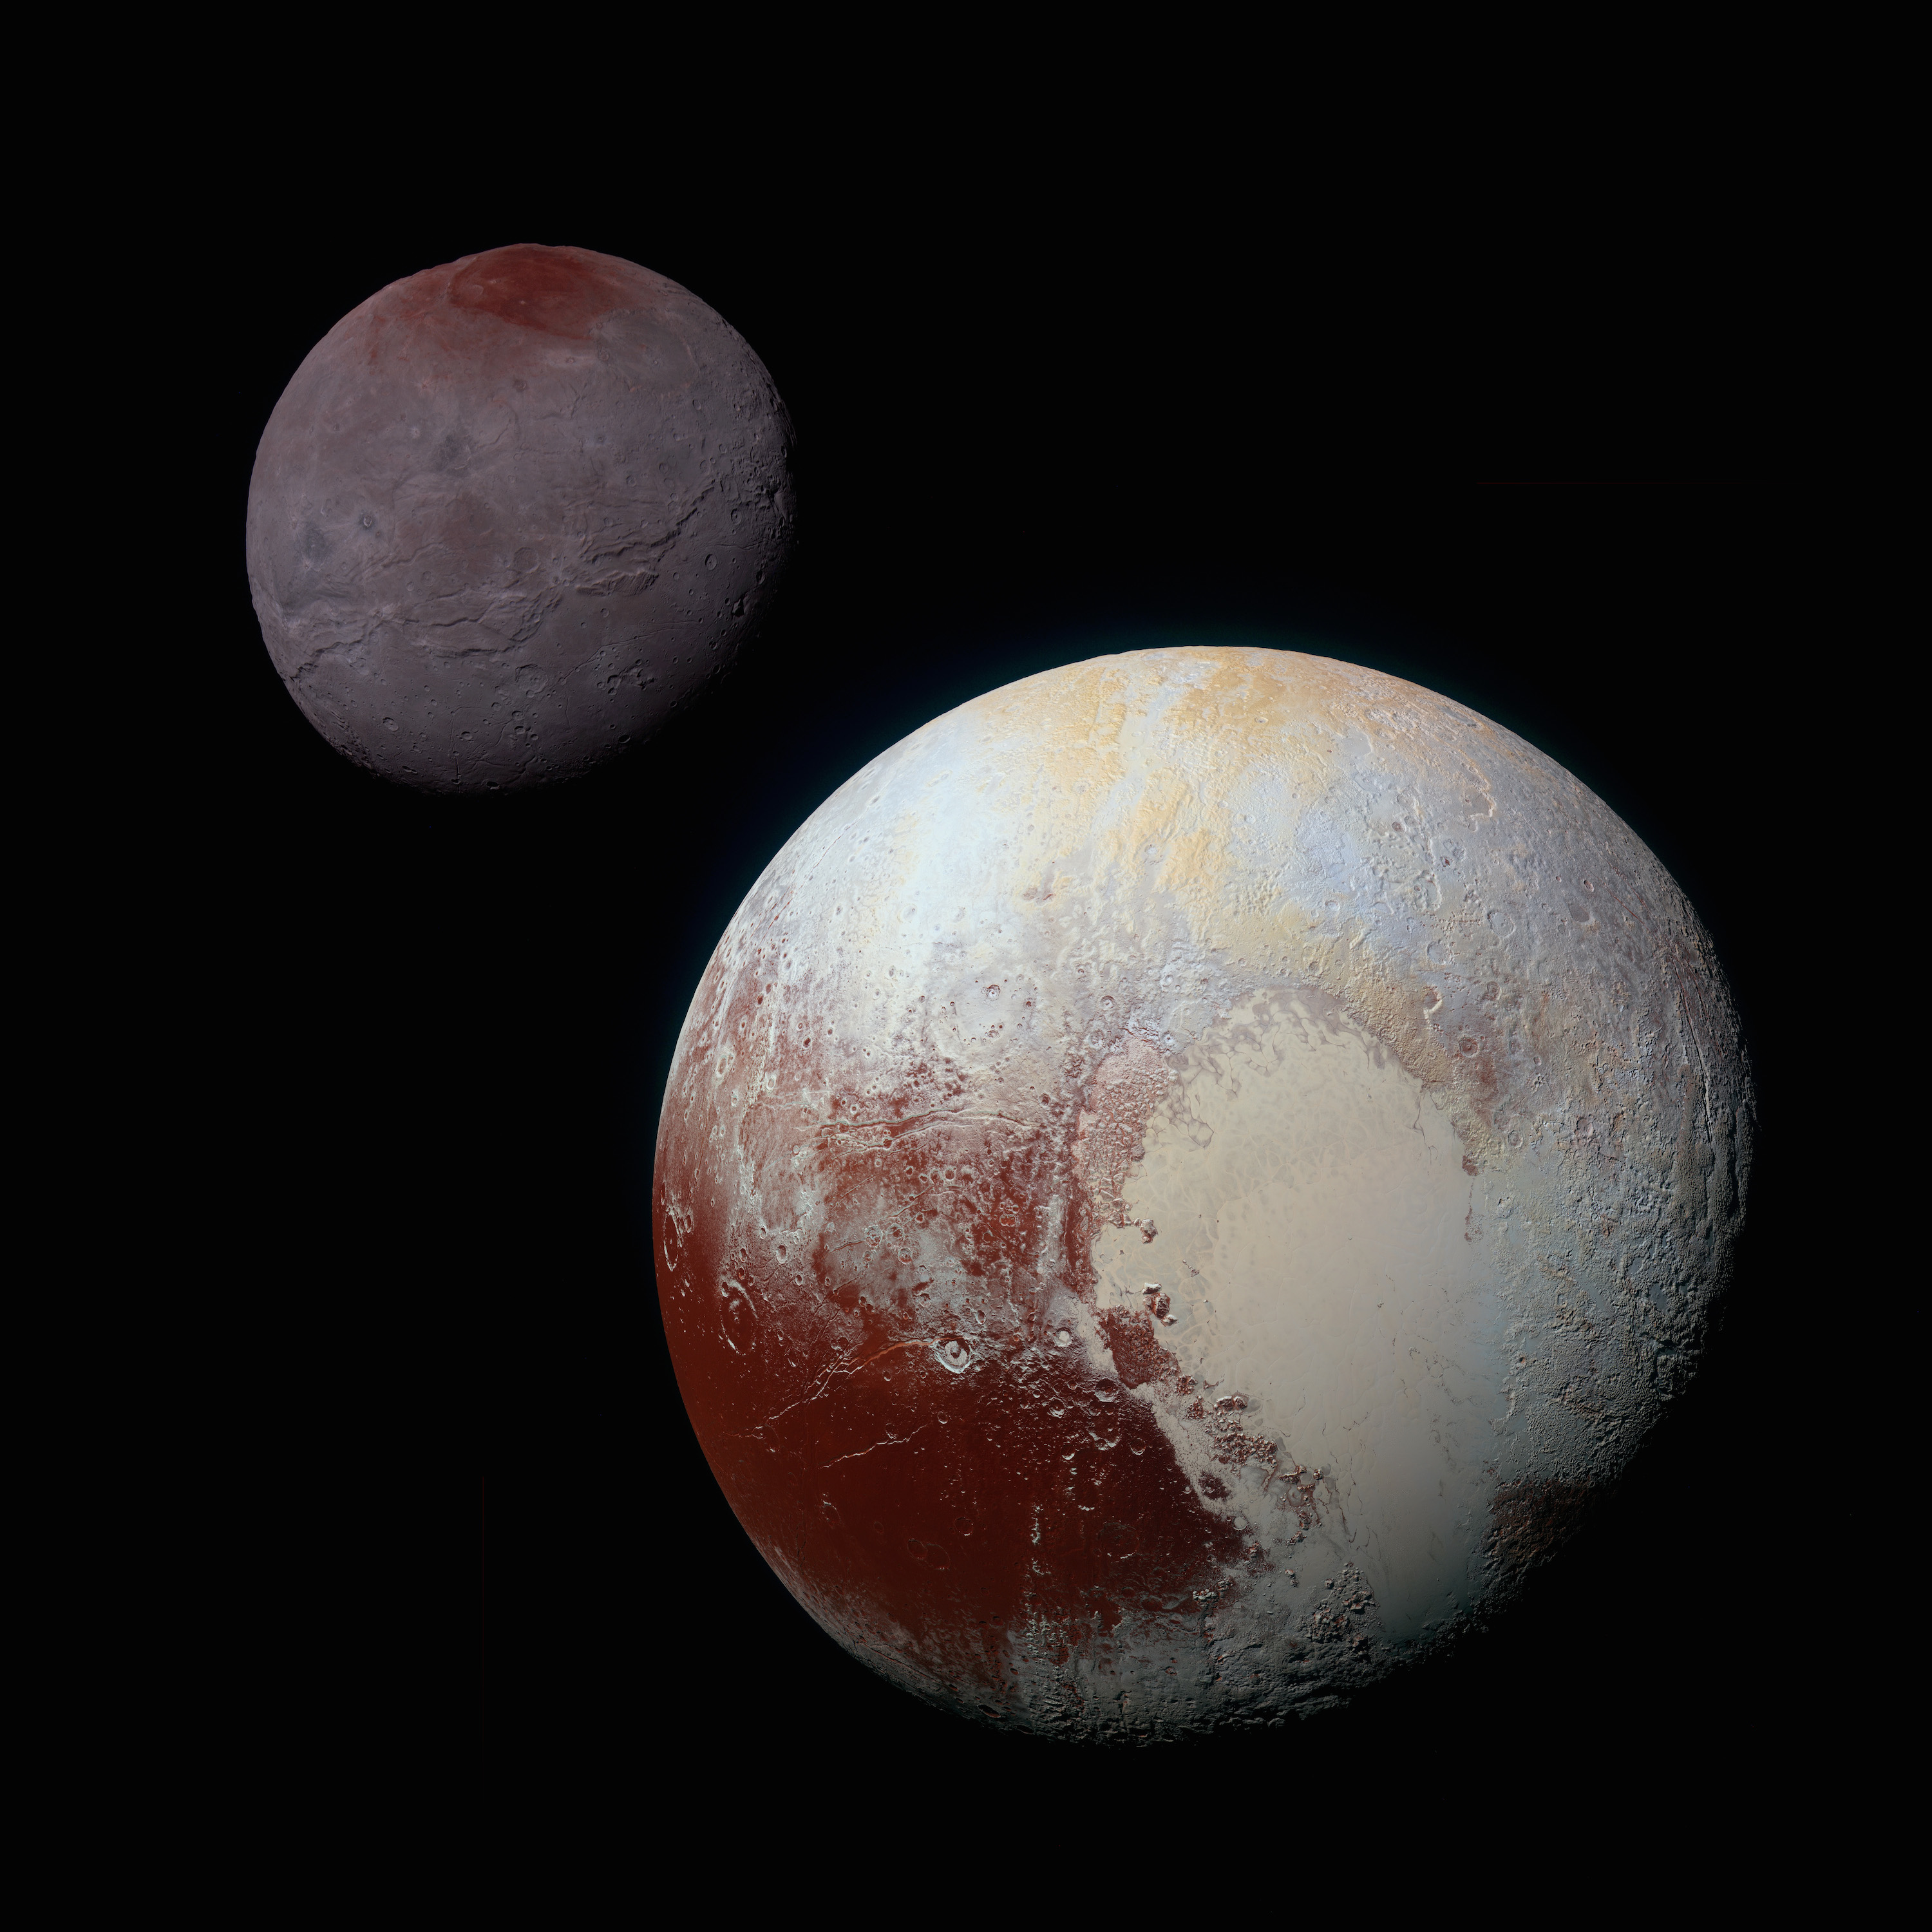 This composite image of Pluto and Charon with enhanced colors shows a direct comparison of the brightness and terrain types, highlighting the similarity between Charon's reddish north pole and red colors on Pluto. The separation between the two worlds is not to scale. Credit: NASA/Johns Hopkins University Applied Physics Laboratory/Southwest Research Institute